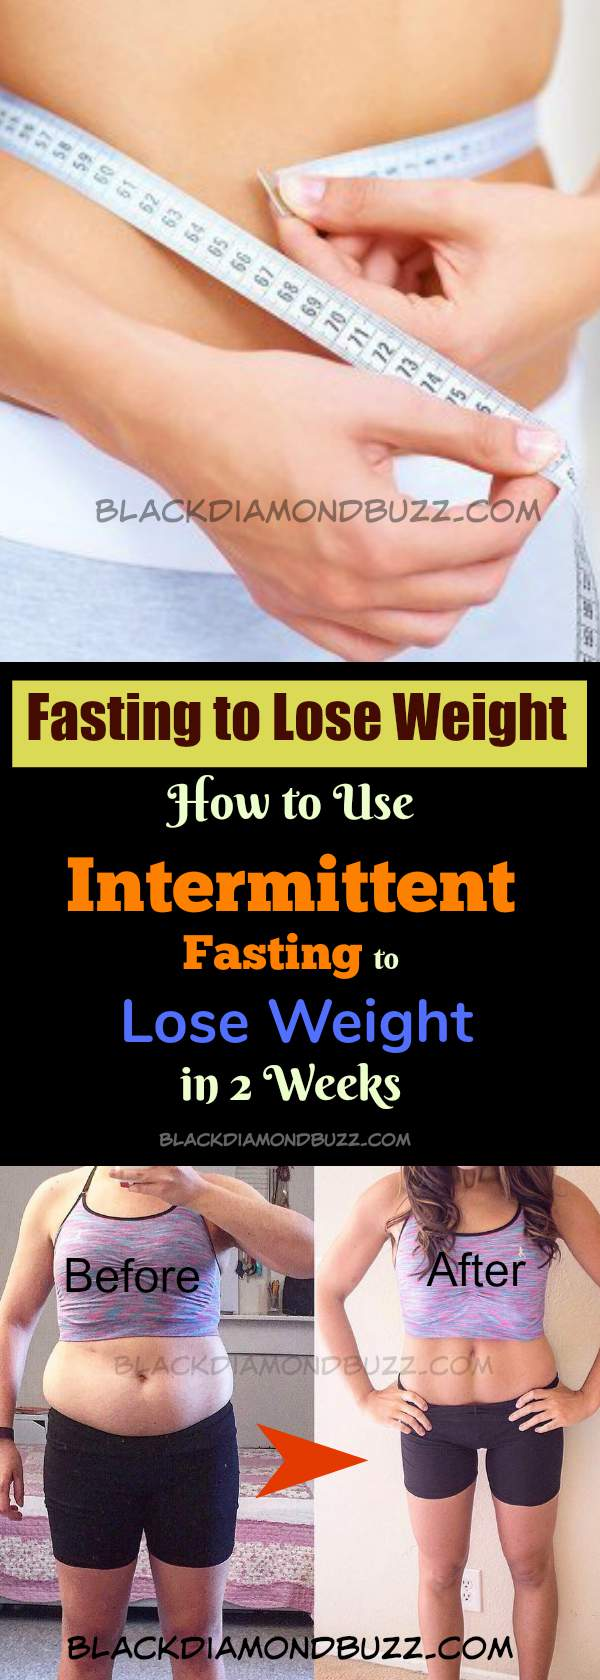 Fasting To Lose Weight: How to Use Intermittent Fasting to Lose Weight in 2 Weeks